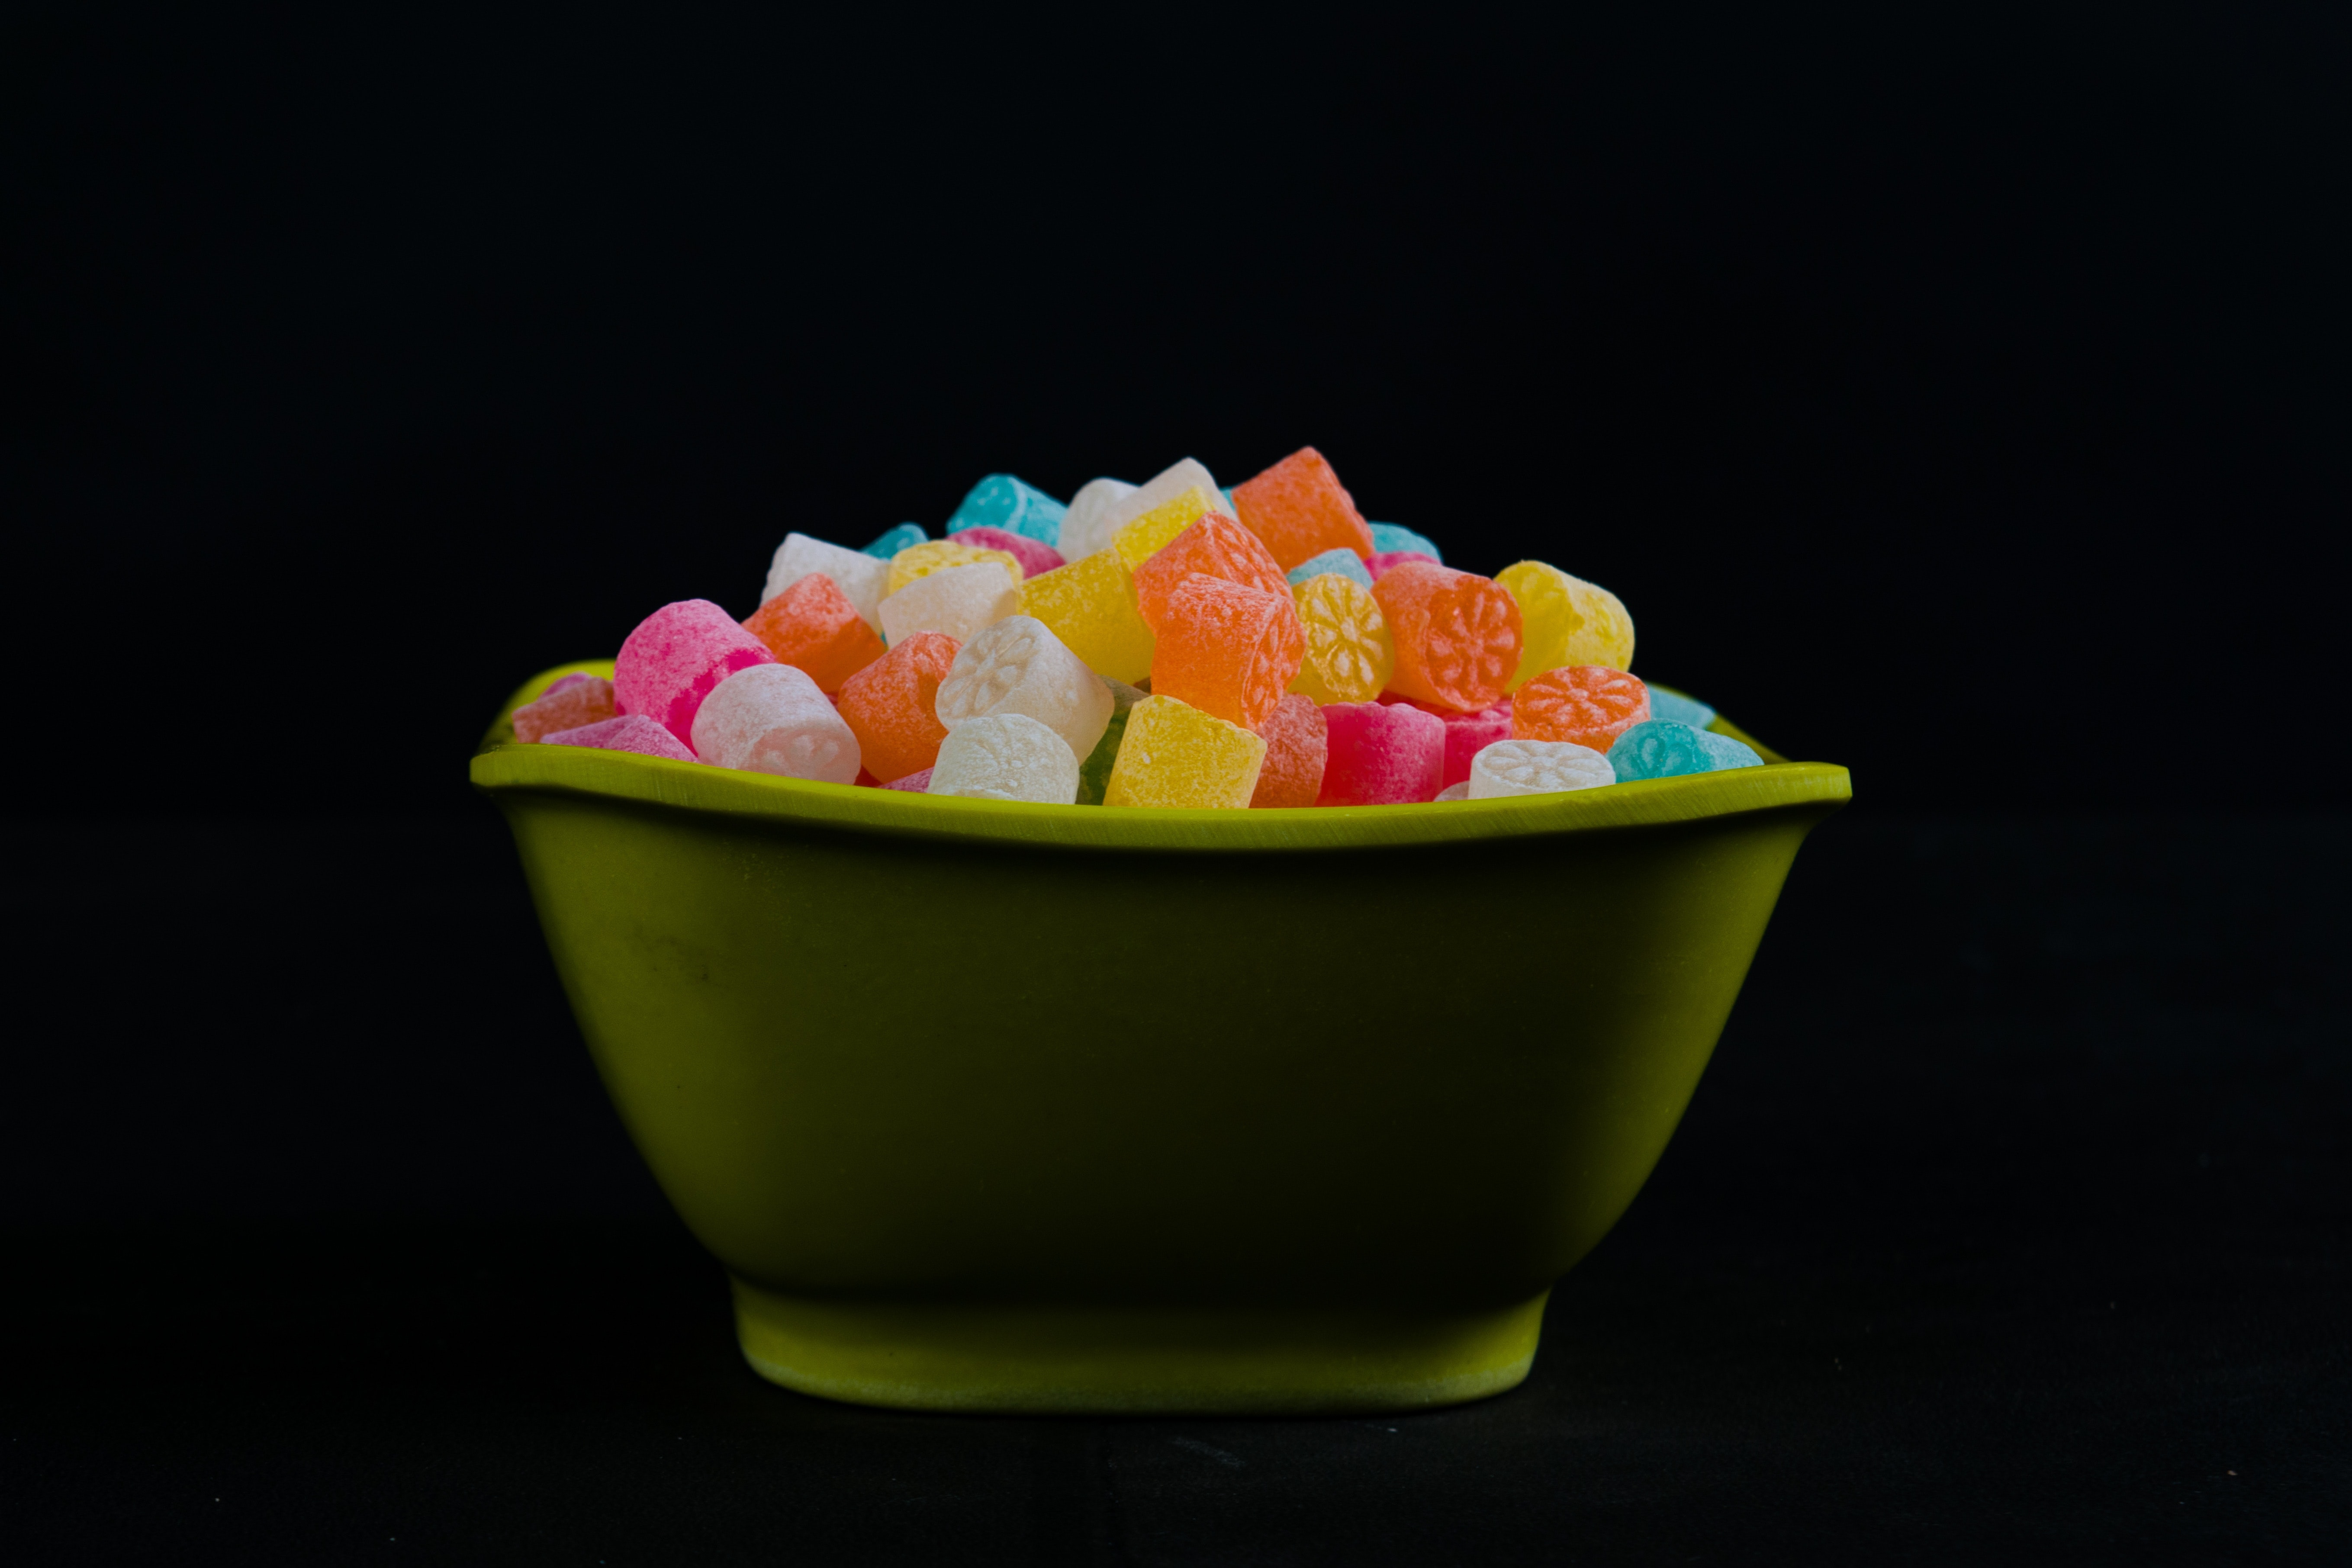 bowl-of-gummies-2231611